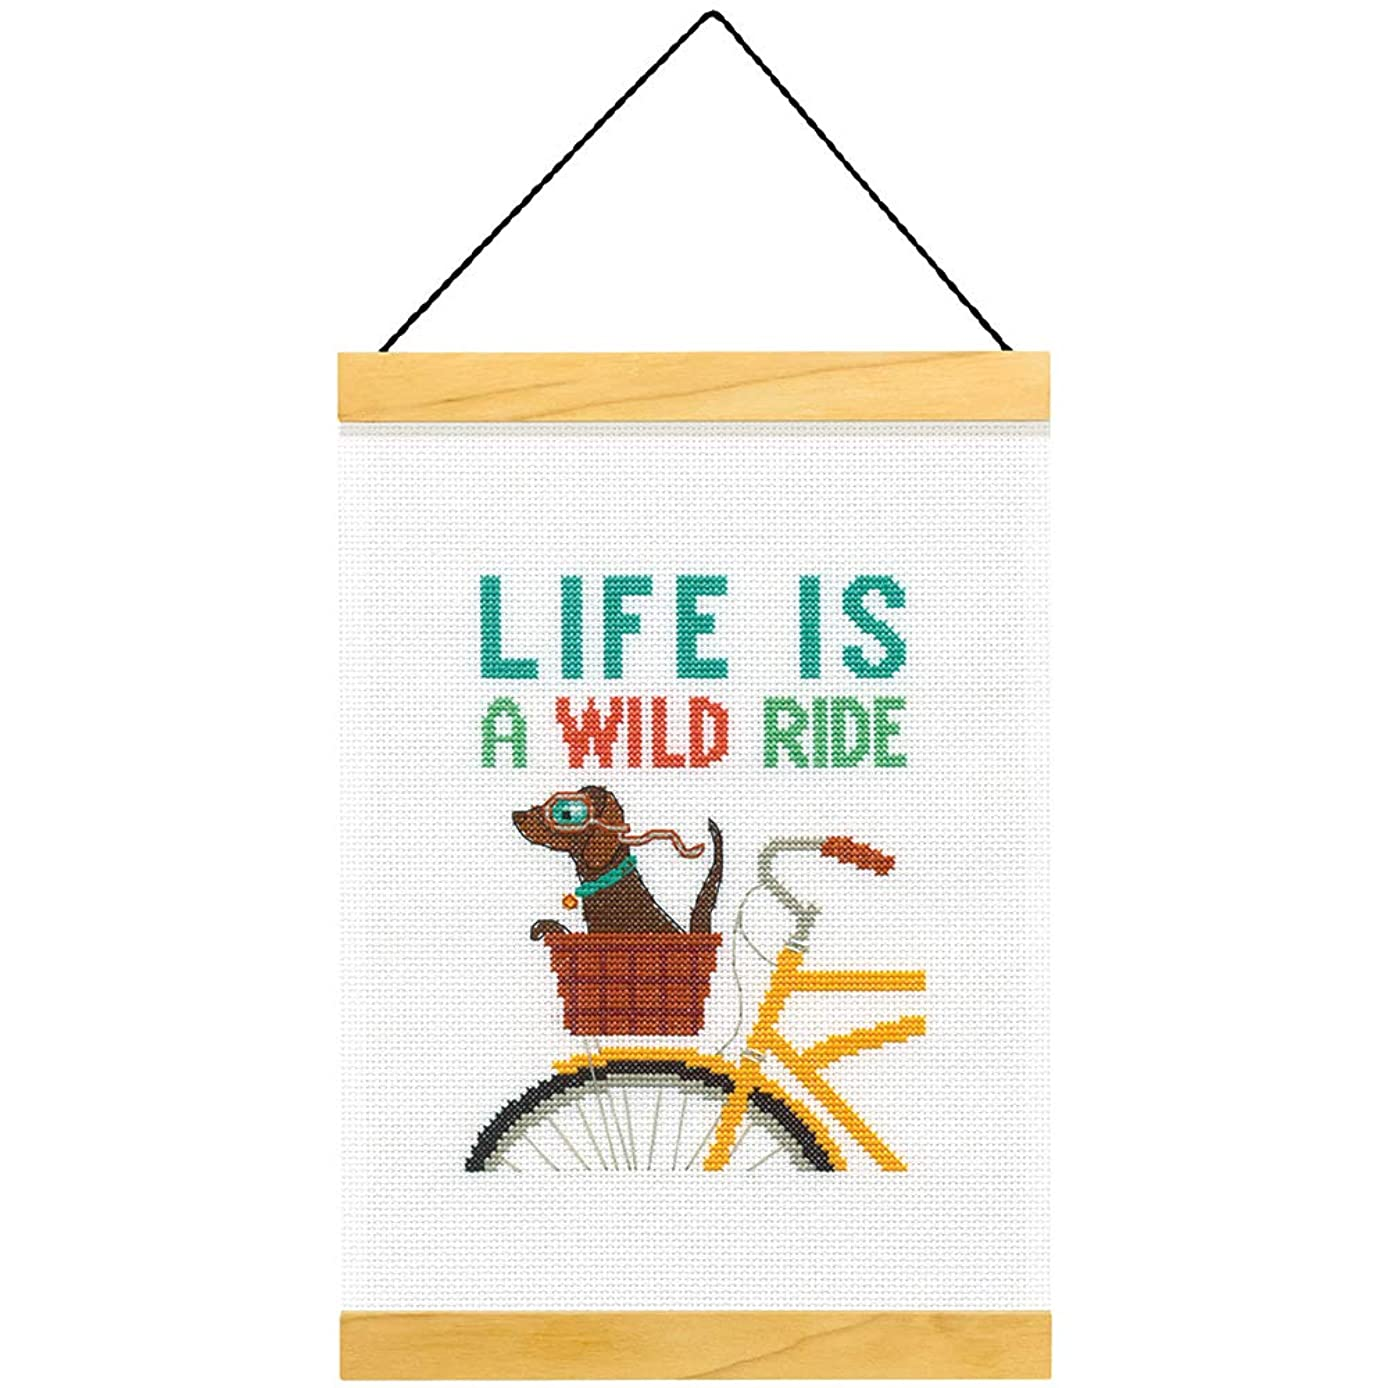 Dimensions 'Wild Ride' Counted Cross Stitch Kit for Beginners, 14 Count White Aida, 8''L x 11.5H''